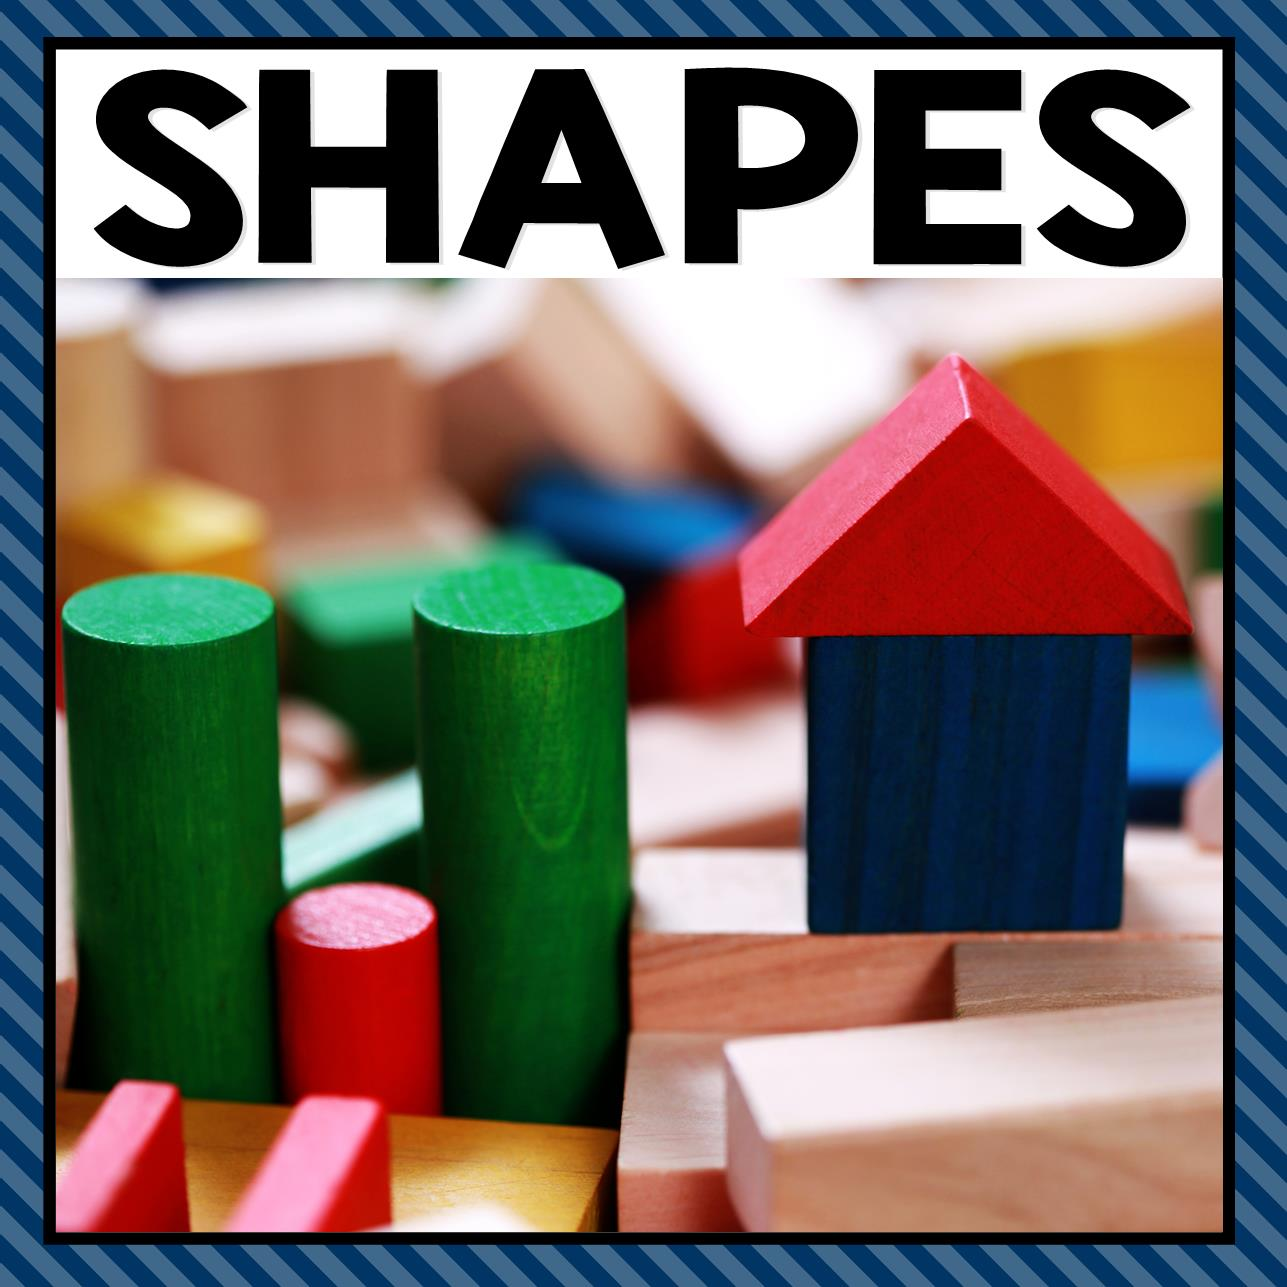 There are so many different shapes activities that you can do at home or in the classroom. This page allows you to quickly see our favorite shapes ideas, activities and printables that have been featured on A Dab of Glue Will Do.